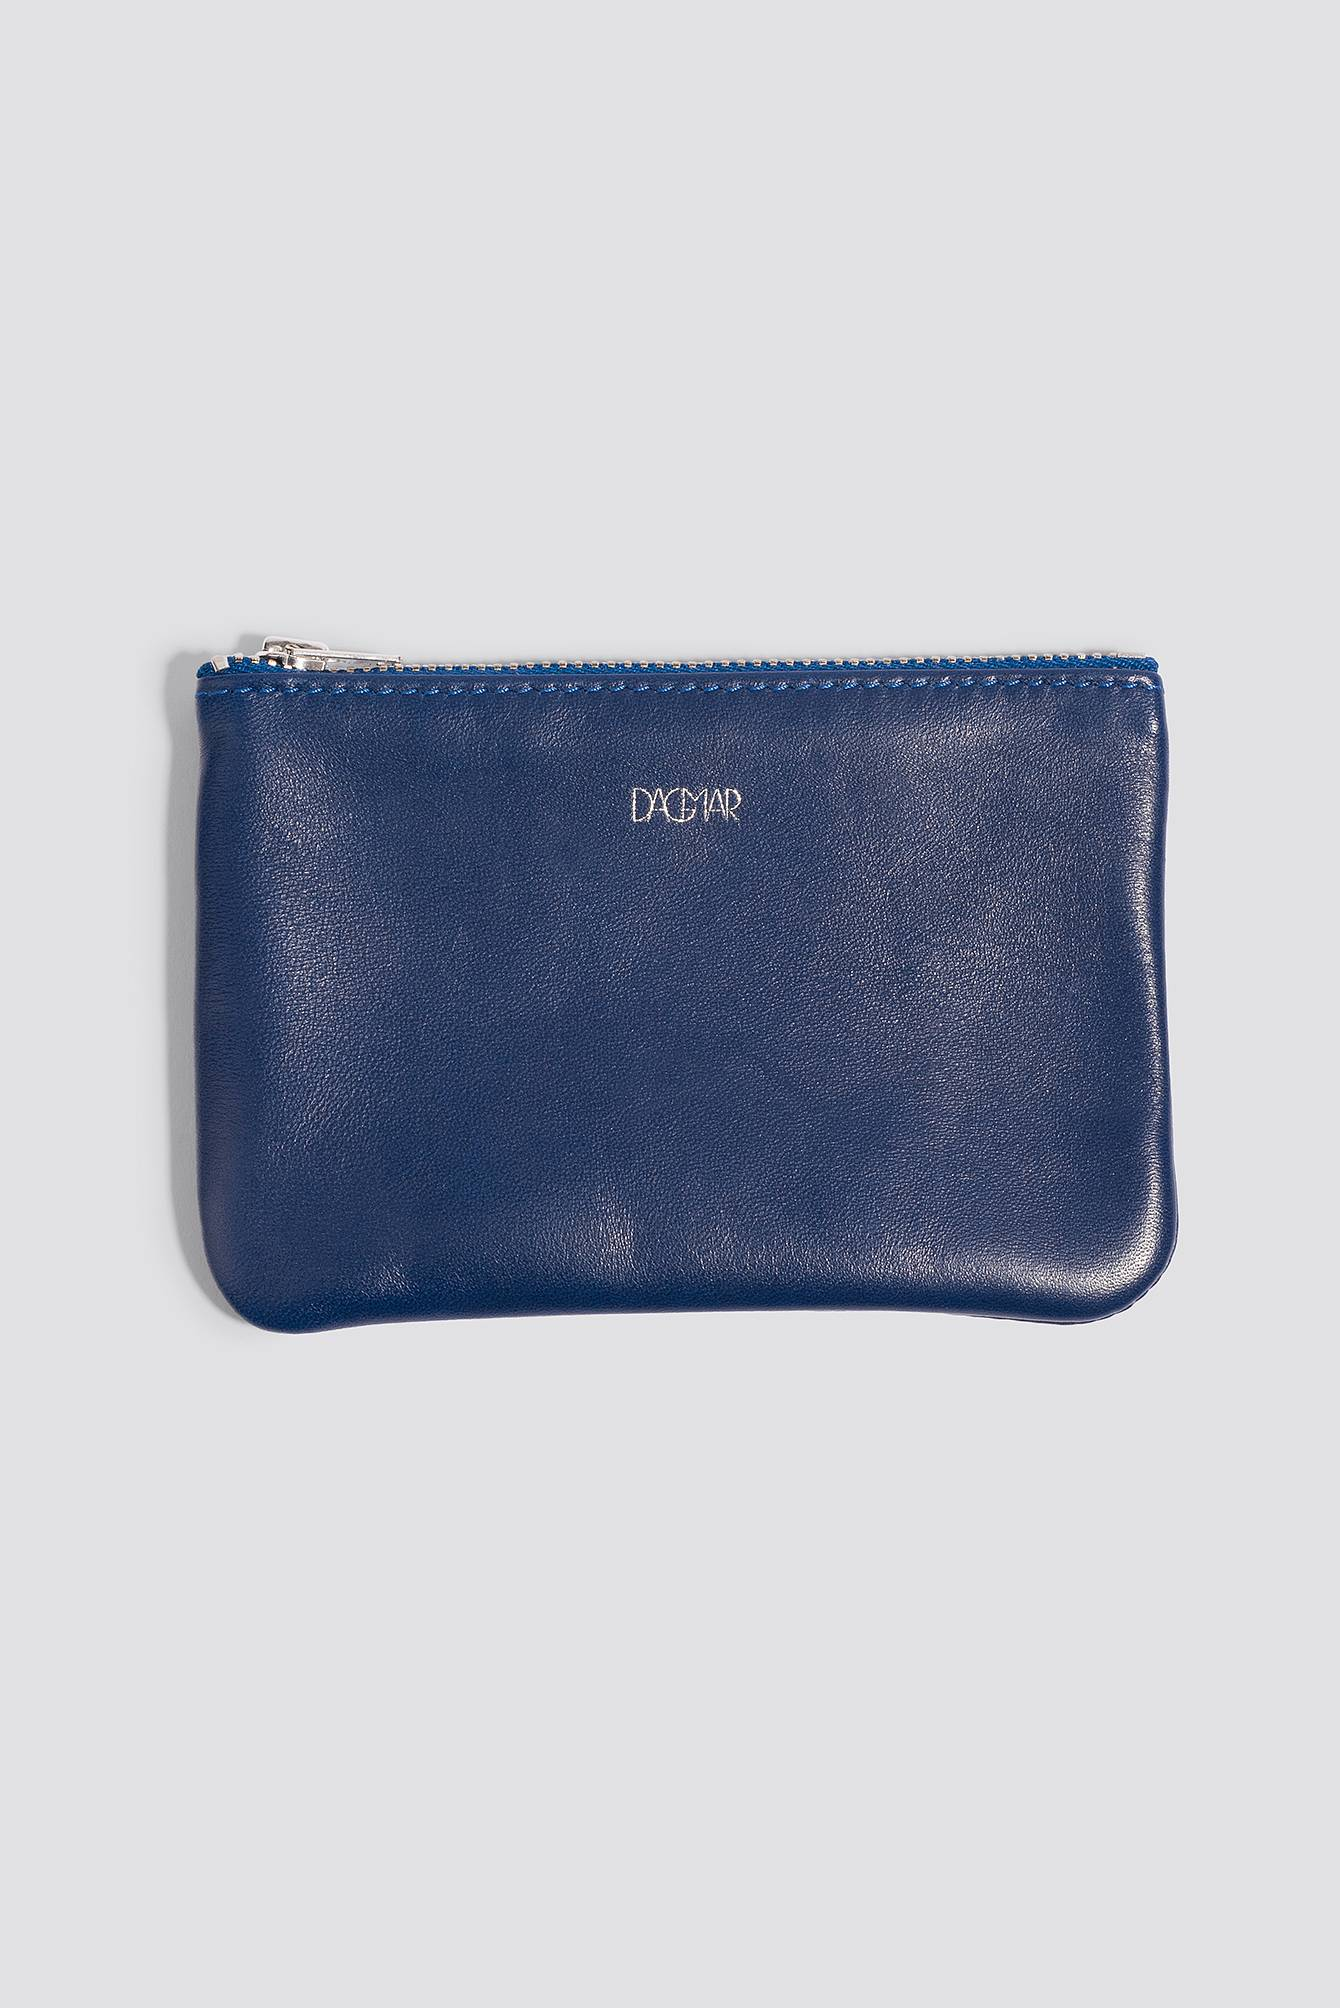 Dagmar Small Zip Purse - Blue